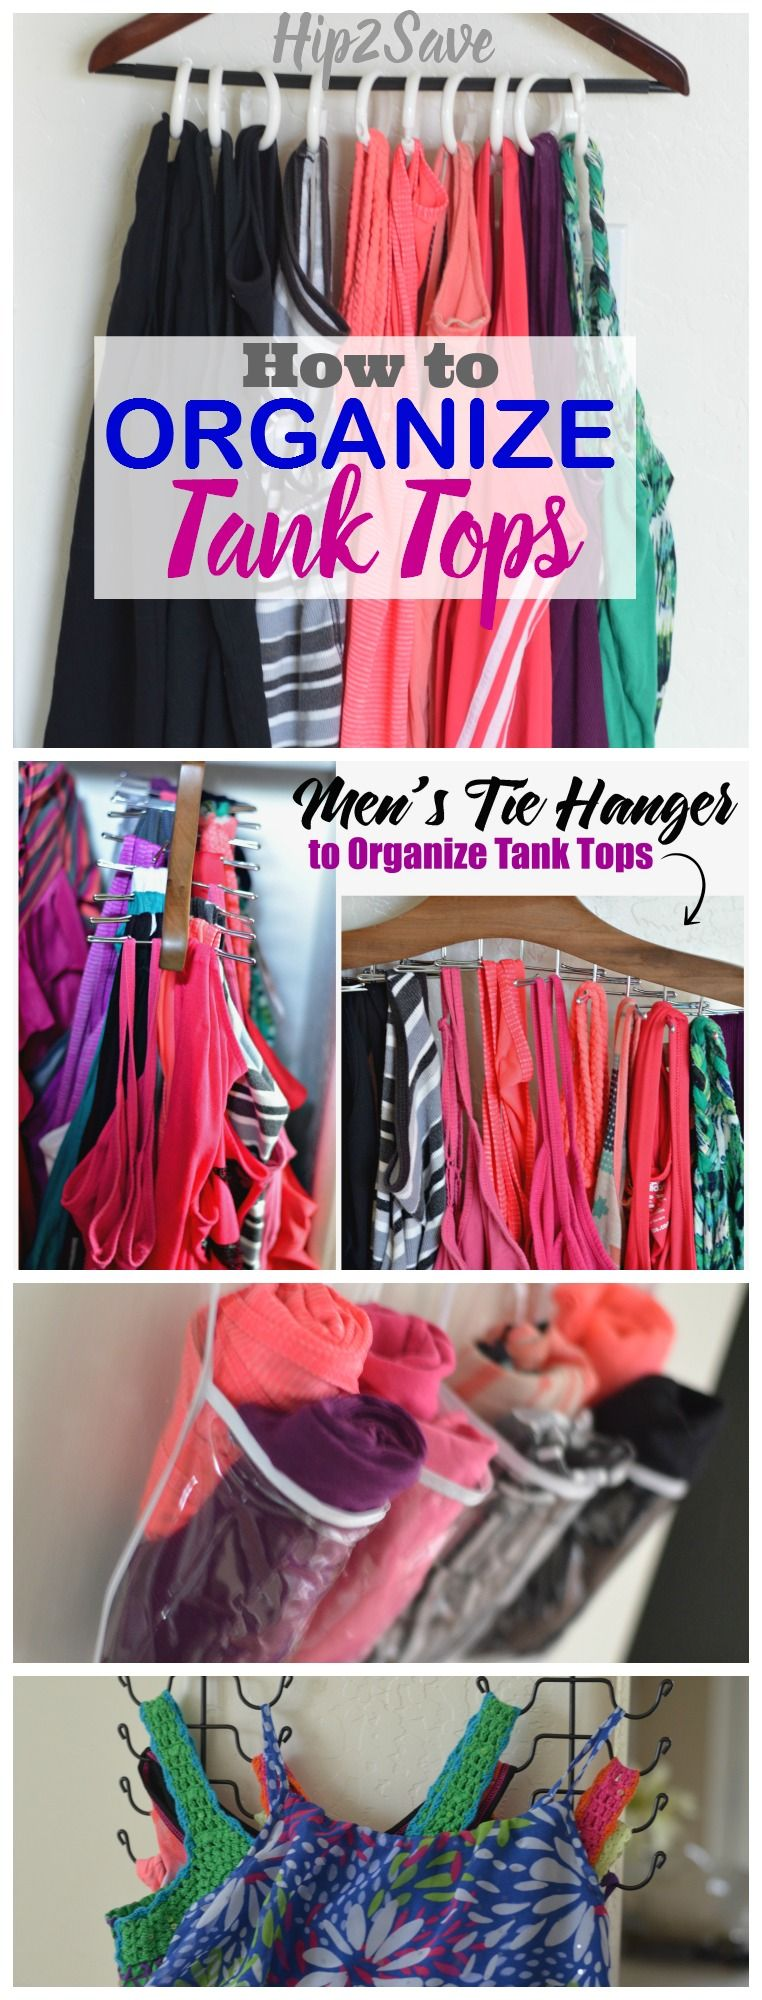 e18bb8494e8af 4 Easy Ways to Organize Tank Tops. If you find your closet is a bit of a  mess